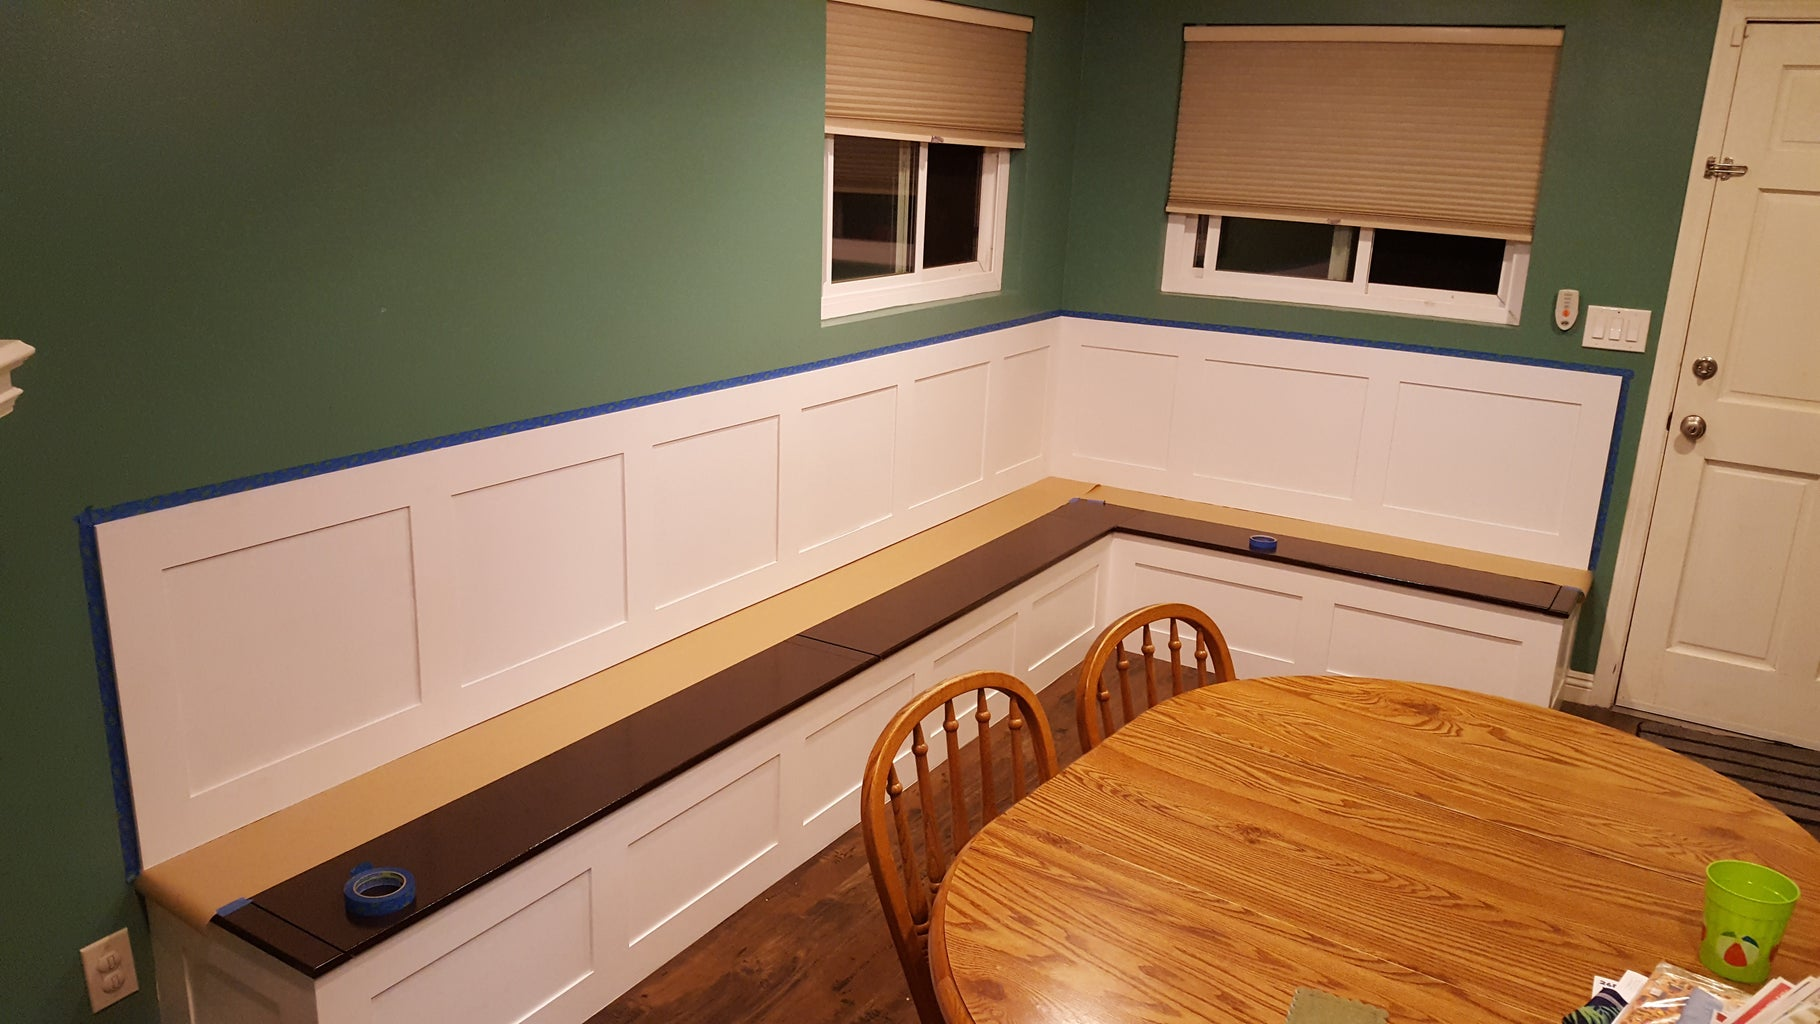 Install and Paint Back Trim